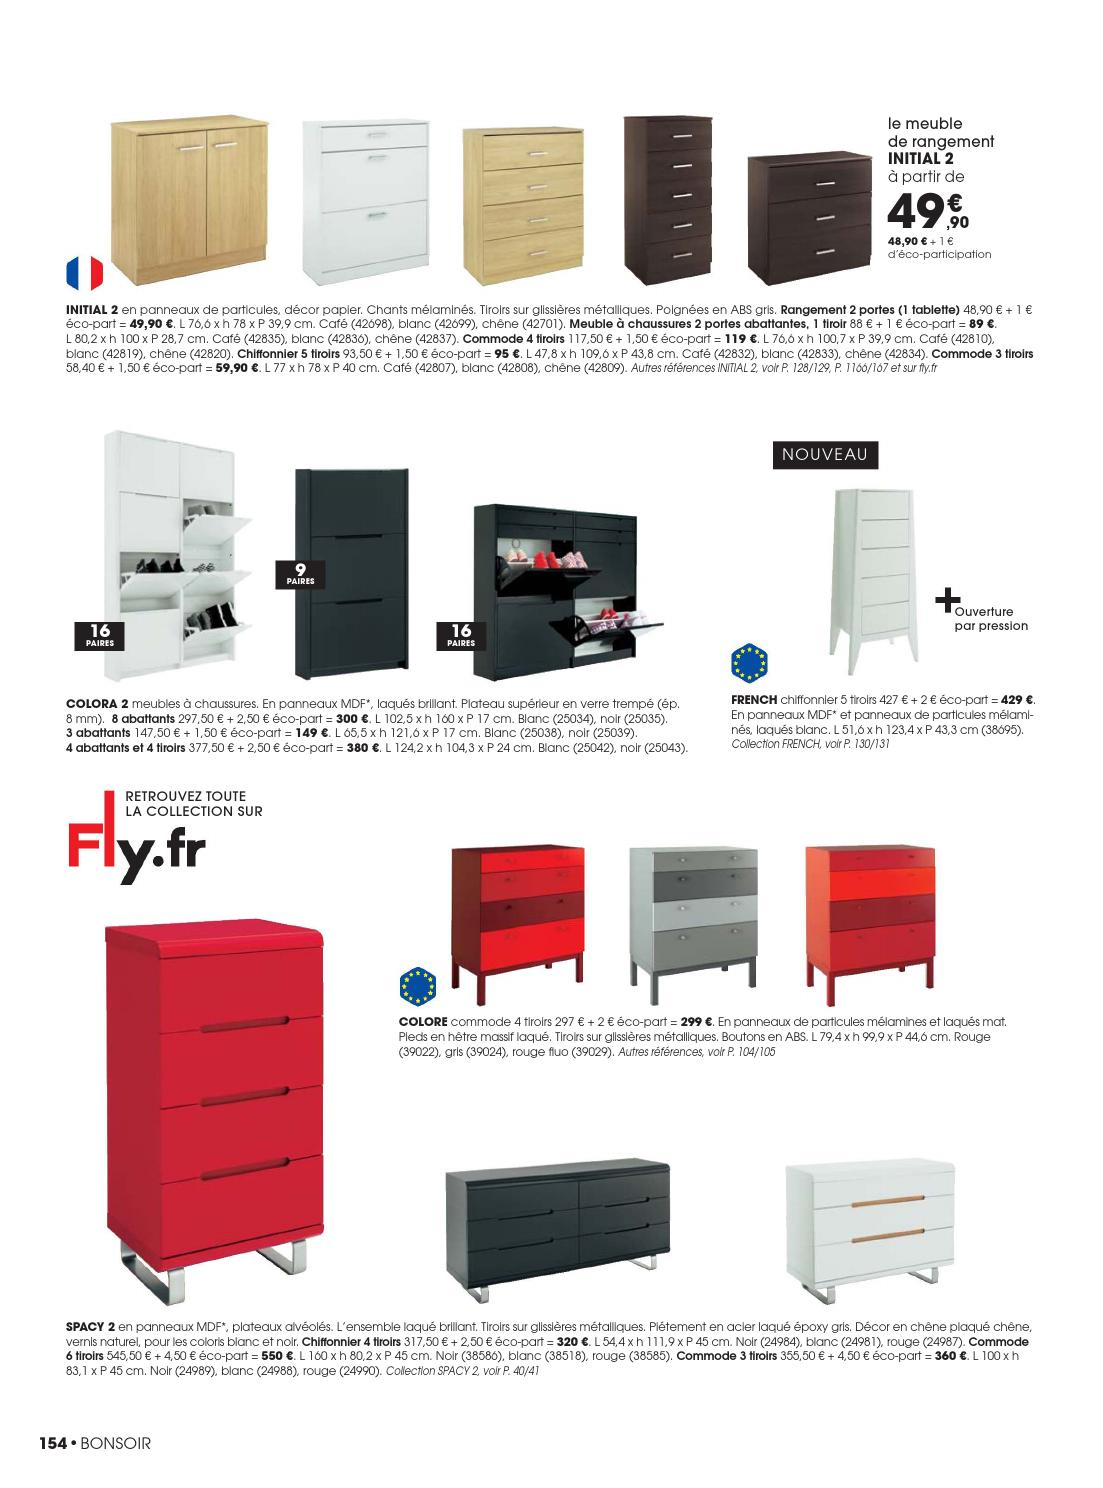 catalogue fly collection 2013 2014 by